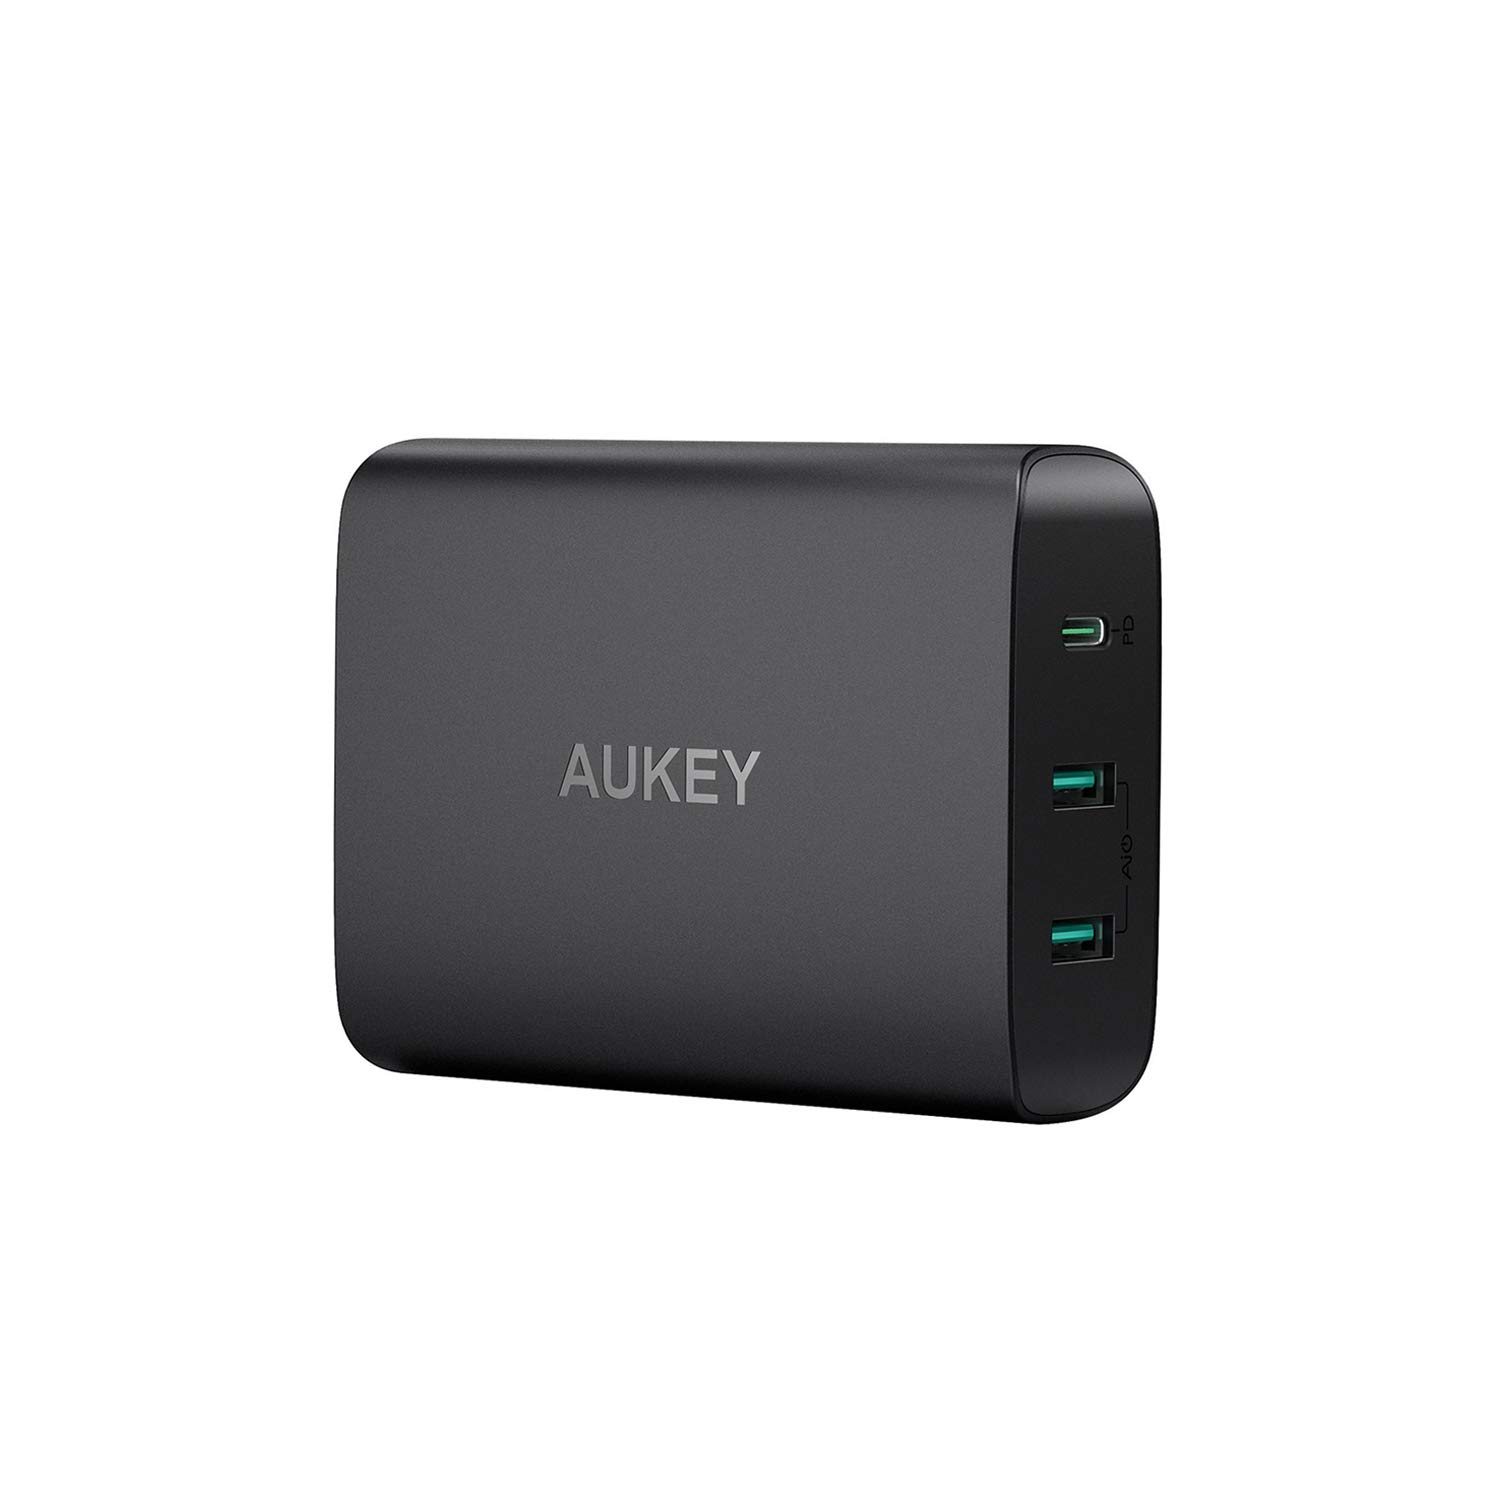 AUKEY USB C Charger with 60W Power Delivery 3.0 & Dual Port USB Charger, Compatible MacBook/Pro, Dell XPS, iPhone 11/11 Pro/Max/XS/XR, Samsung Galaxy S8 / S8+ / Note8 and More by AUKEY